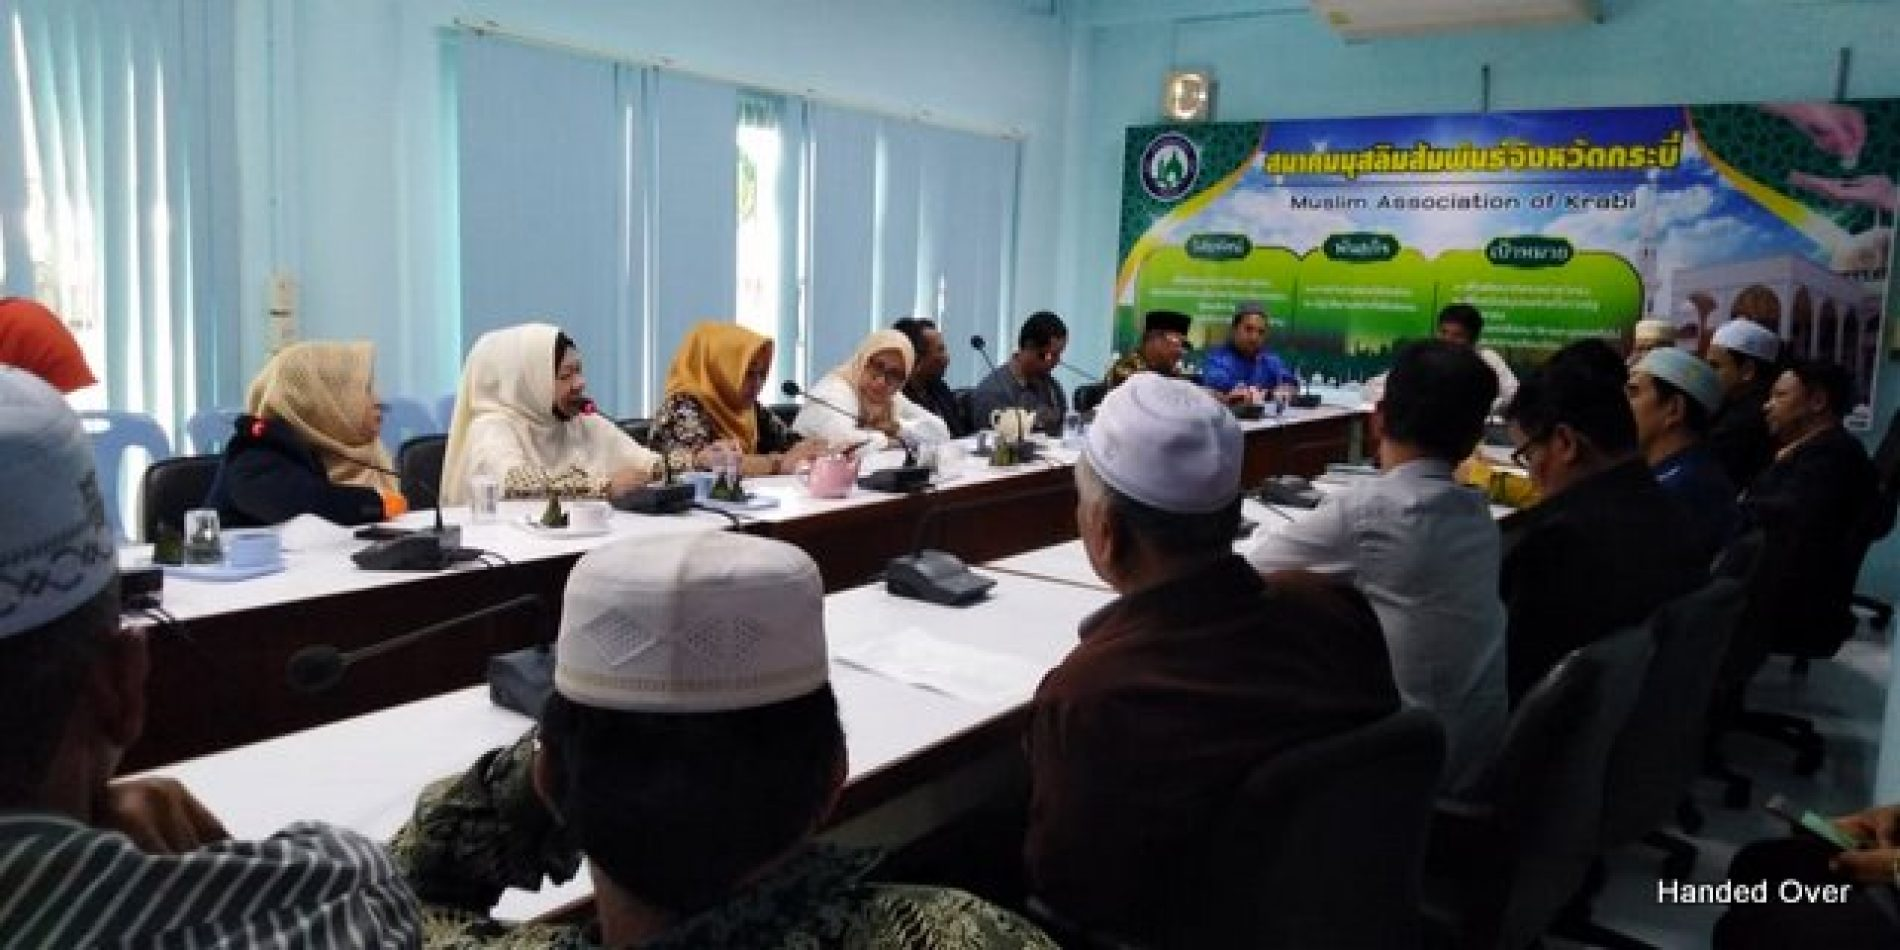 UMI – Muslim Association of Krabi Thailand Collaborates